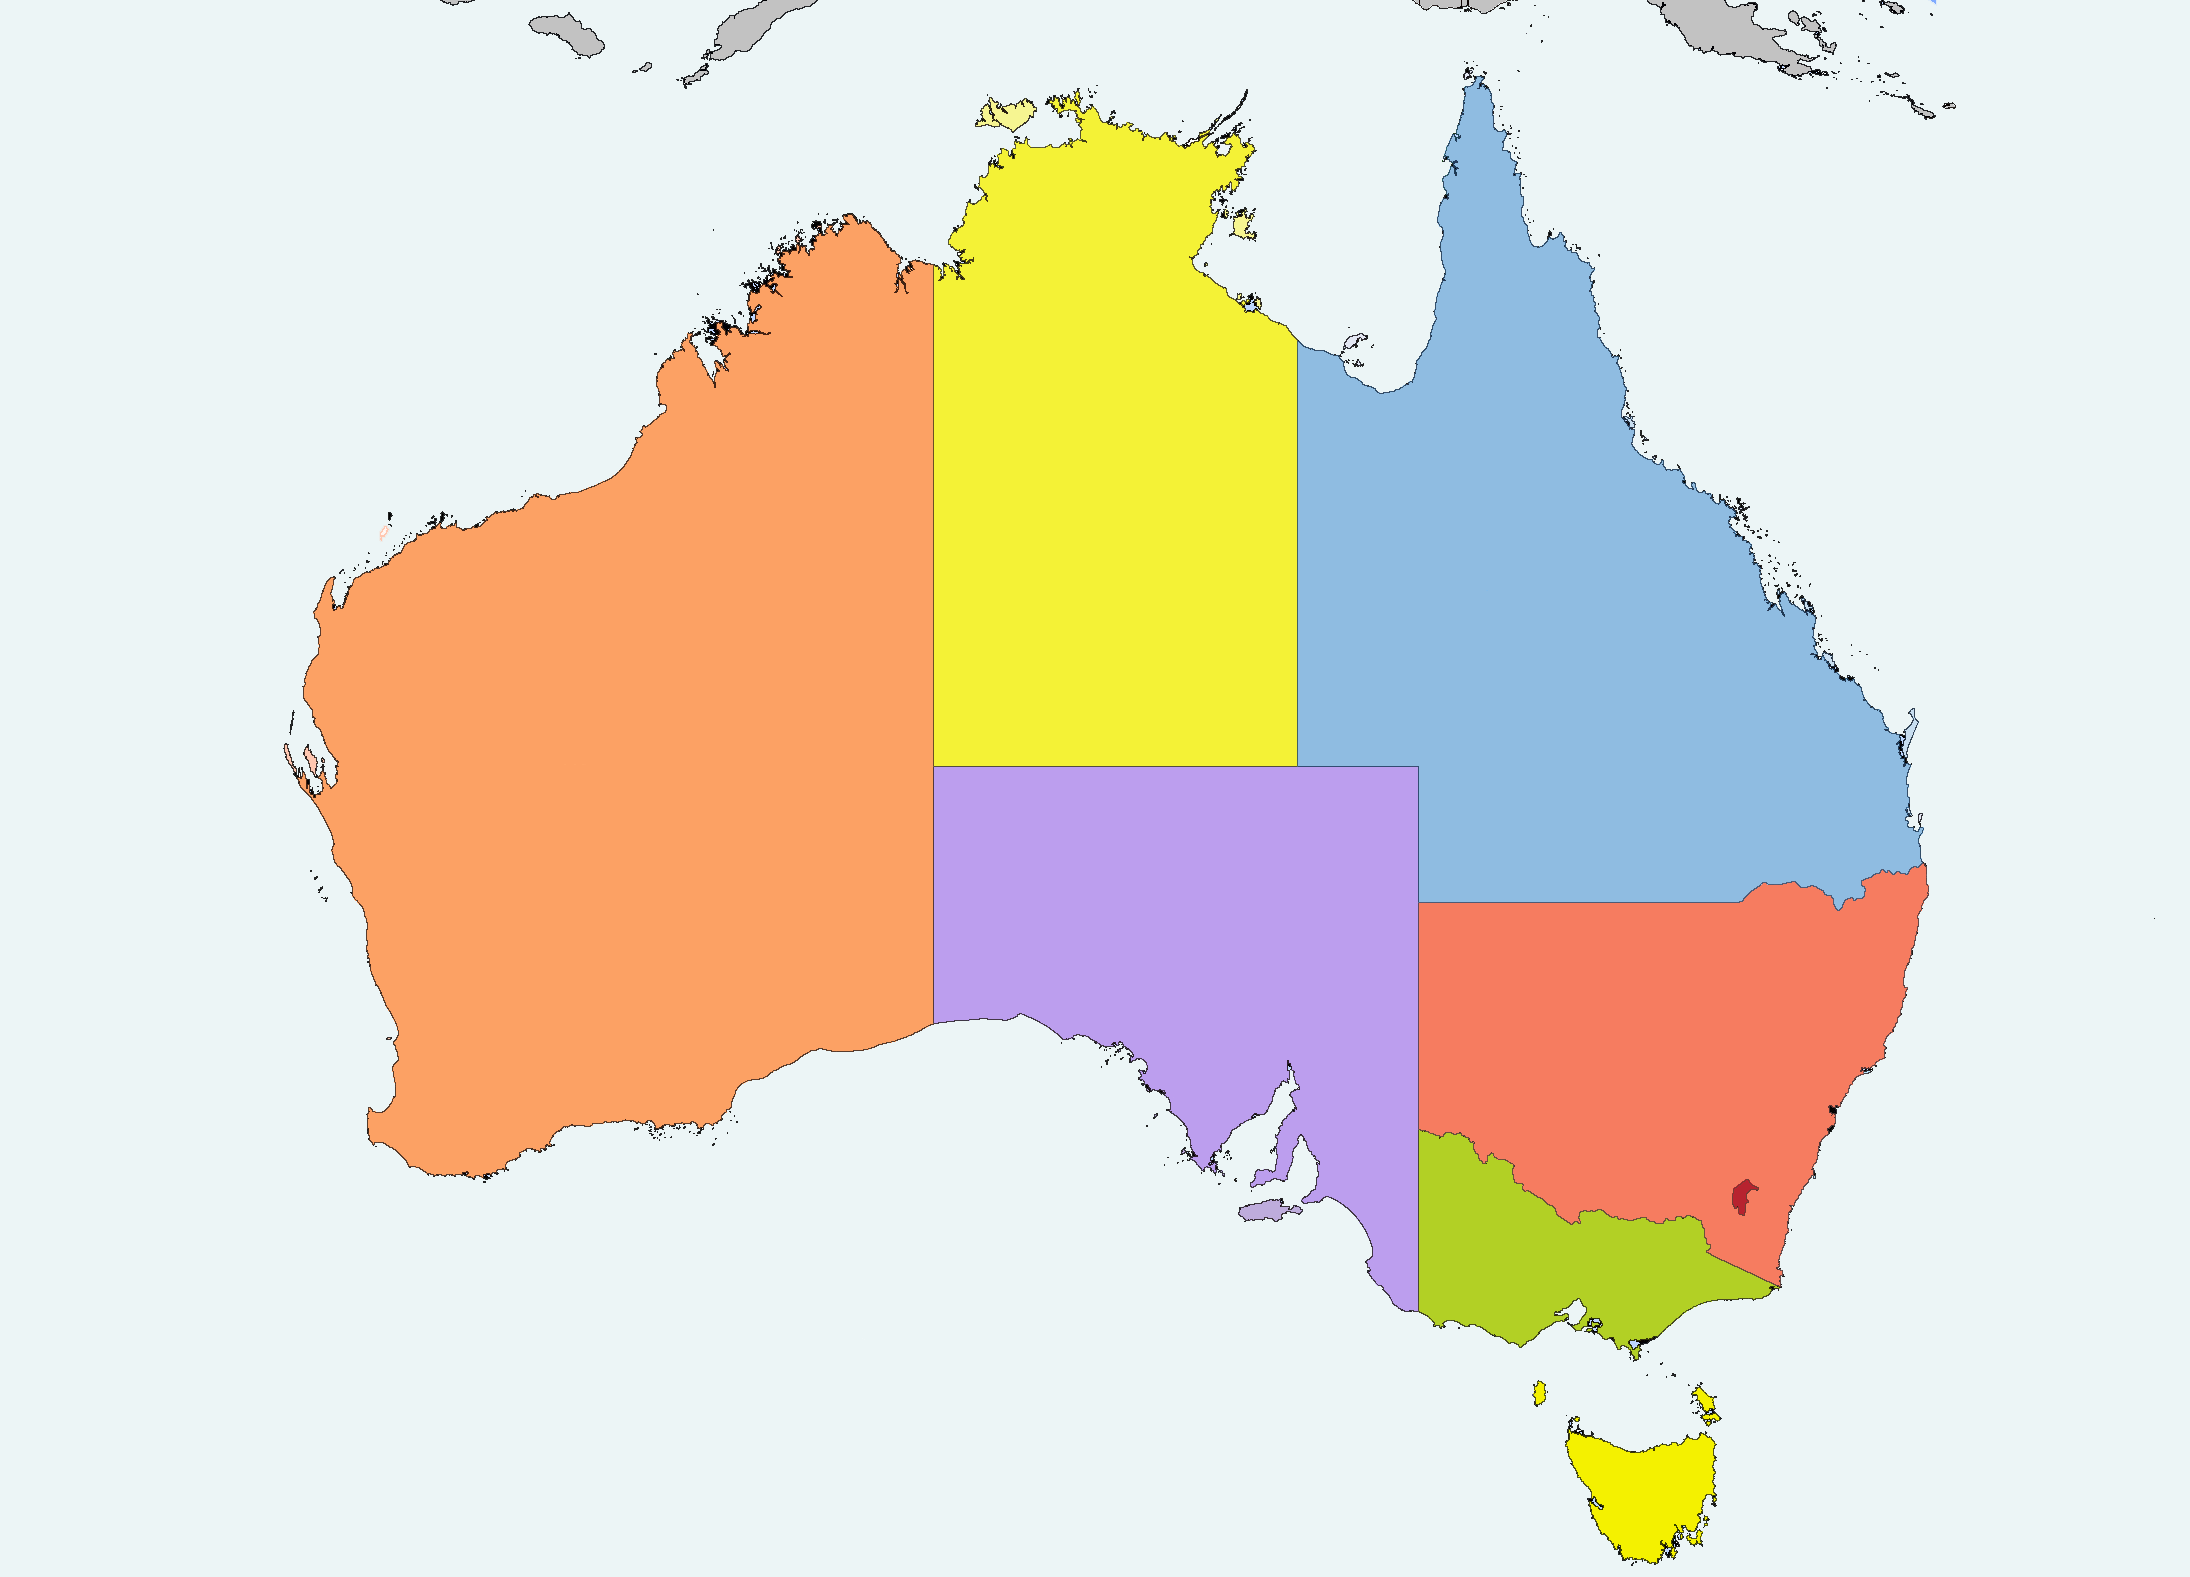 FileAustralia location map recoloredpng Wikimedia Commons